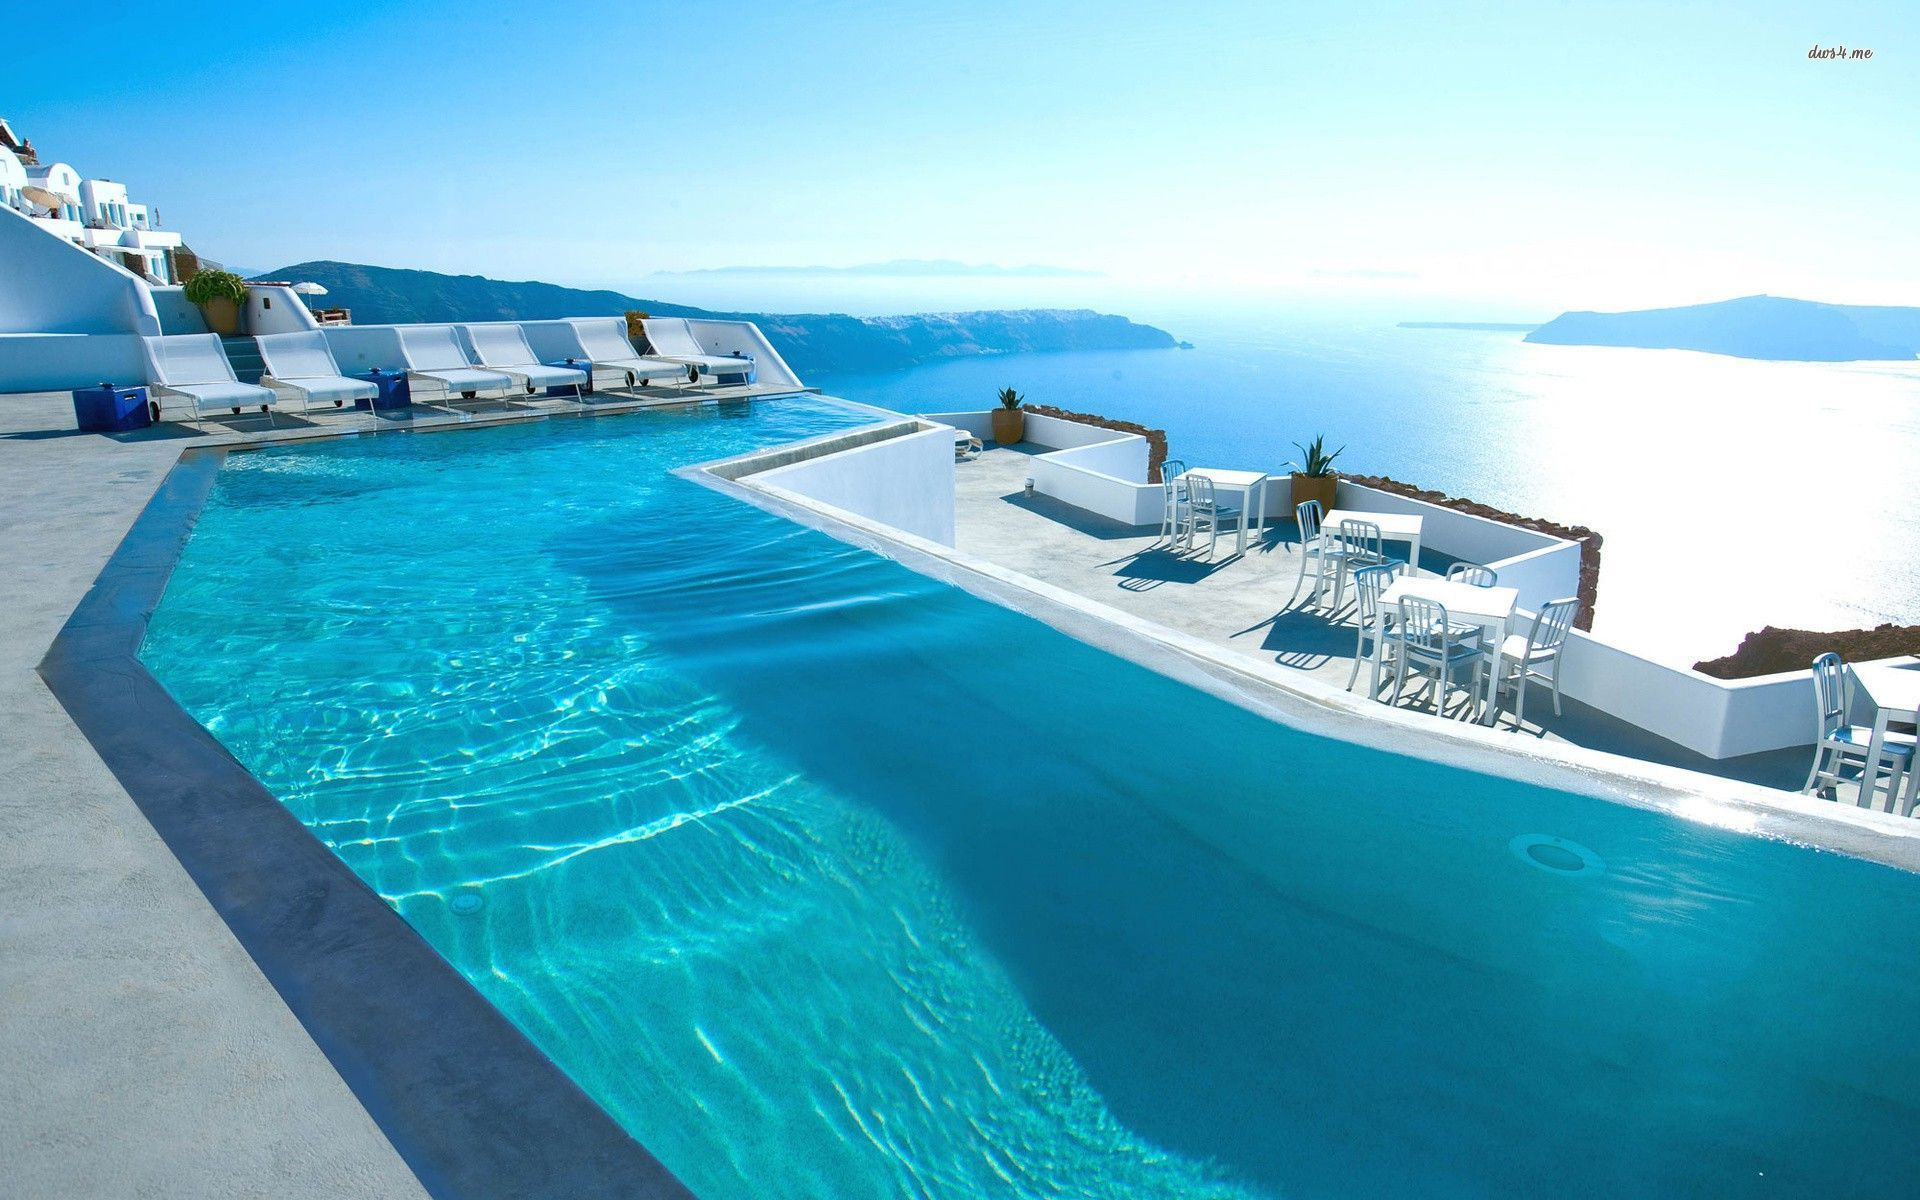 To infinity and beyond in these breathtaking hotel pools